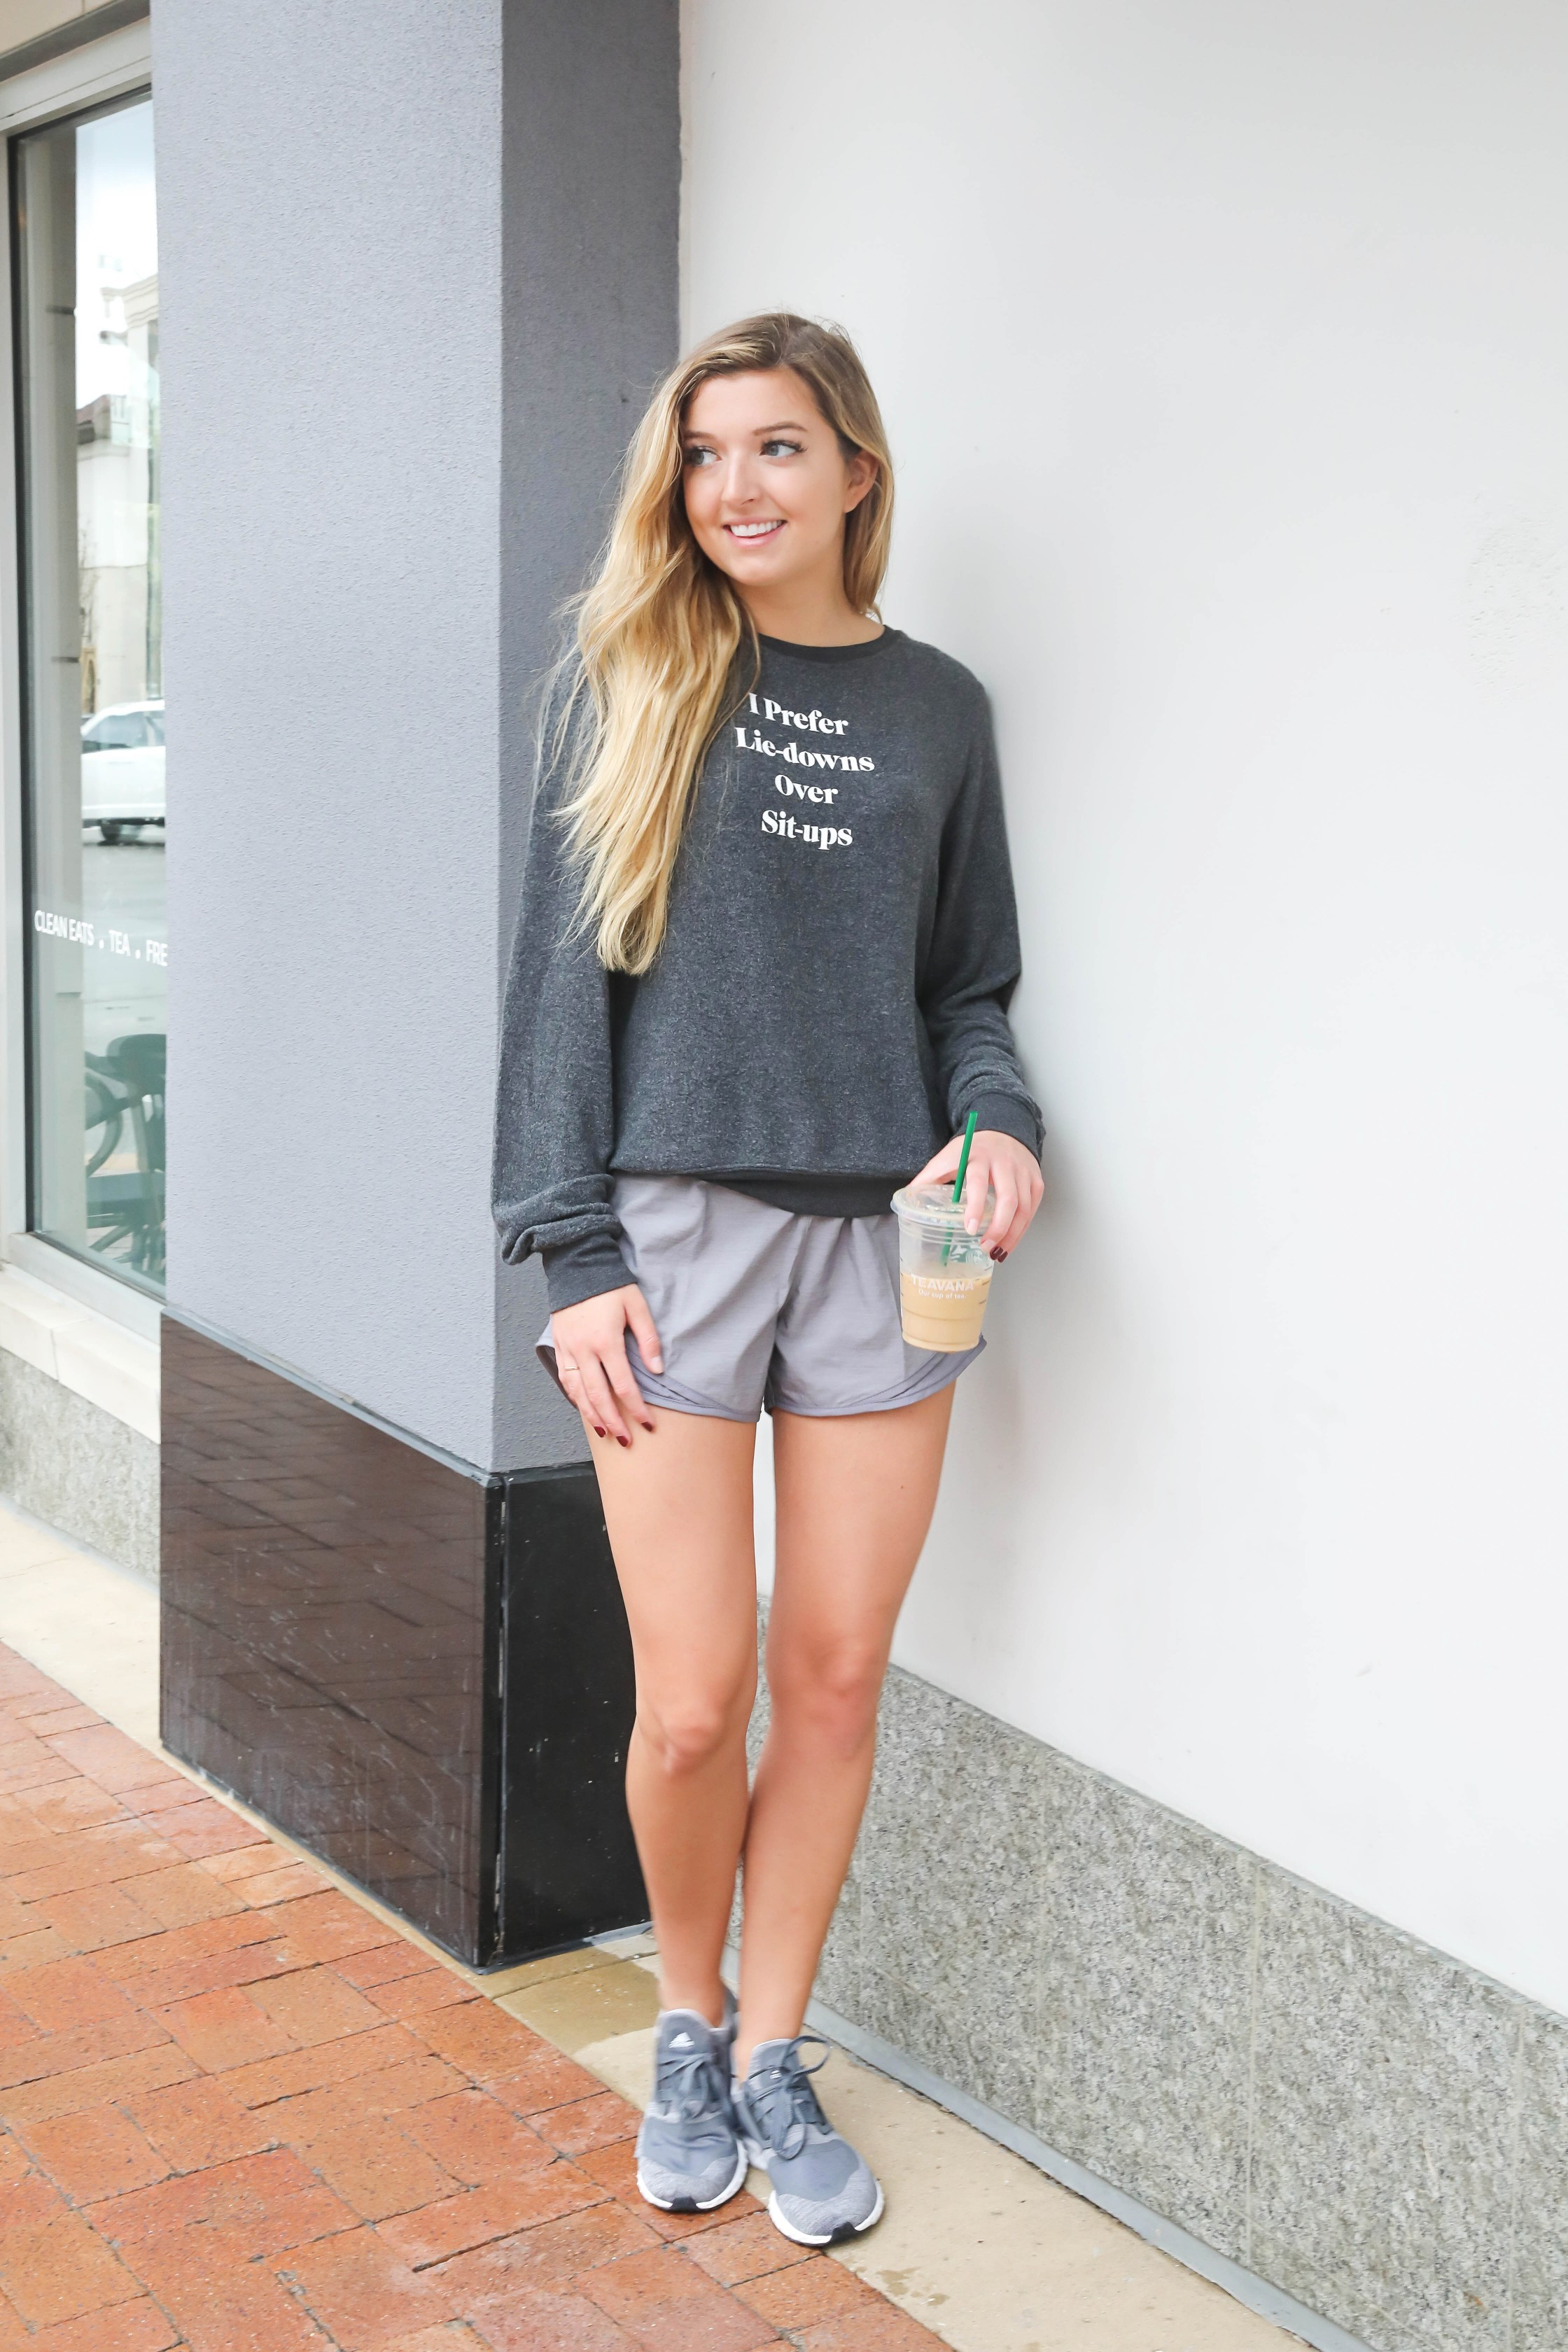 I prefer lie downs over sit ups sweatshirt! Super cute wildfox t-shirt that is super soft! I am a sucker for anything soft and cozy, which is why I am doing a comfy clothing roundup on my fashion blog! Details on daily dose of charm by lauren lindmark